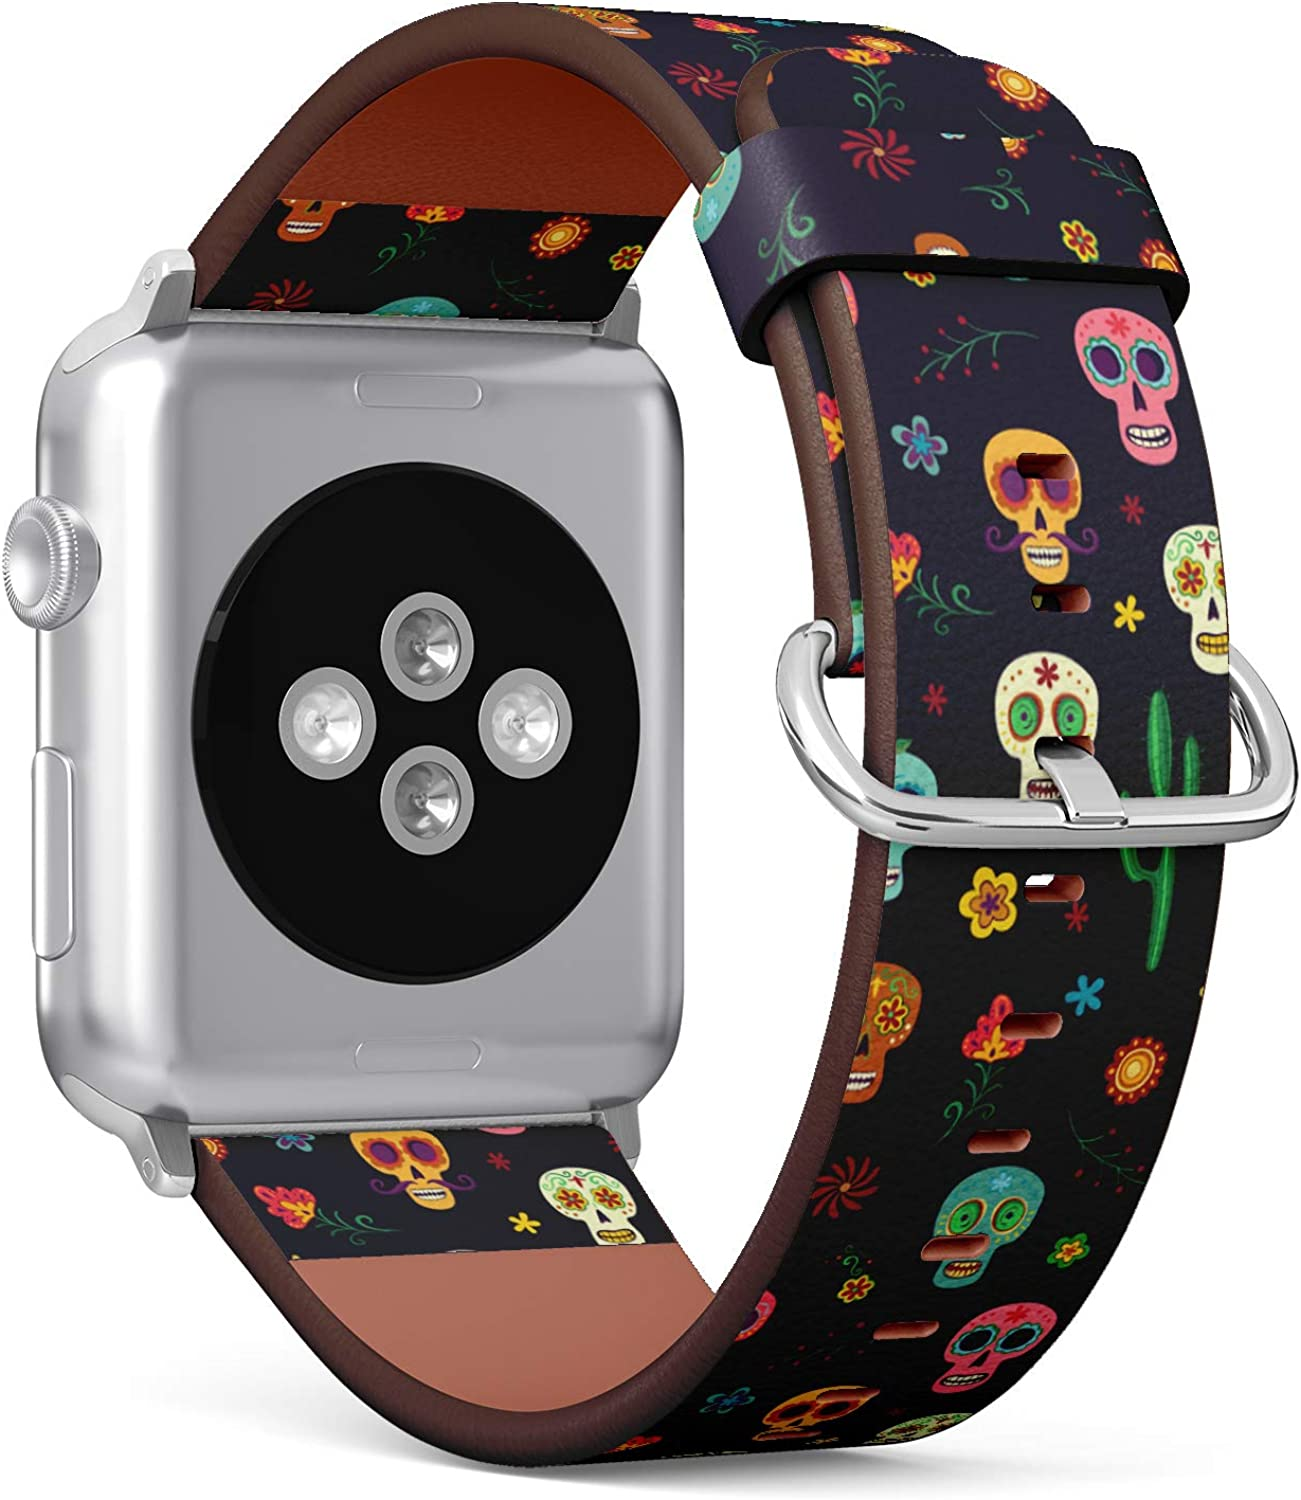 (Mexican Sugar Skull, Cactus and Flower on Wallpaper The Day of The Dead) Patterned Leather Wristband Strap for Apple Watch Series 4/3/2/1 gen,Replacement for iWatch 38mm / 40mm Bands